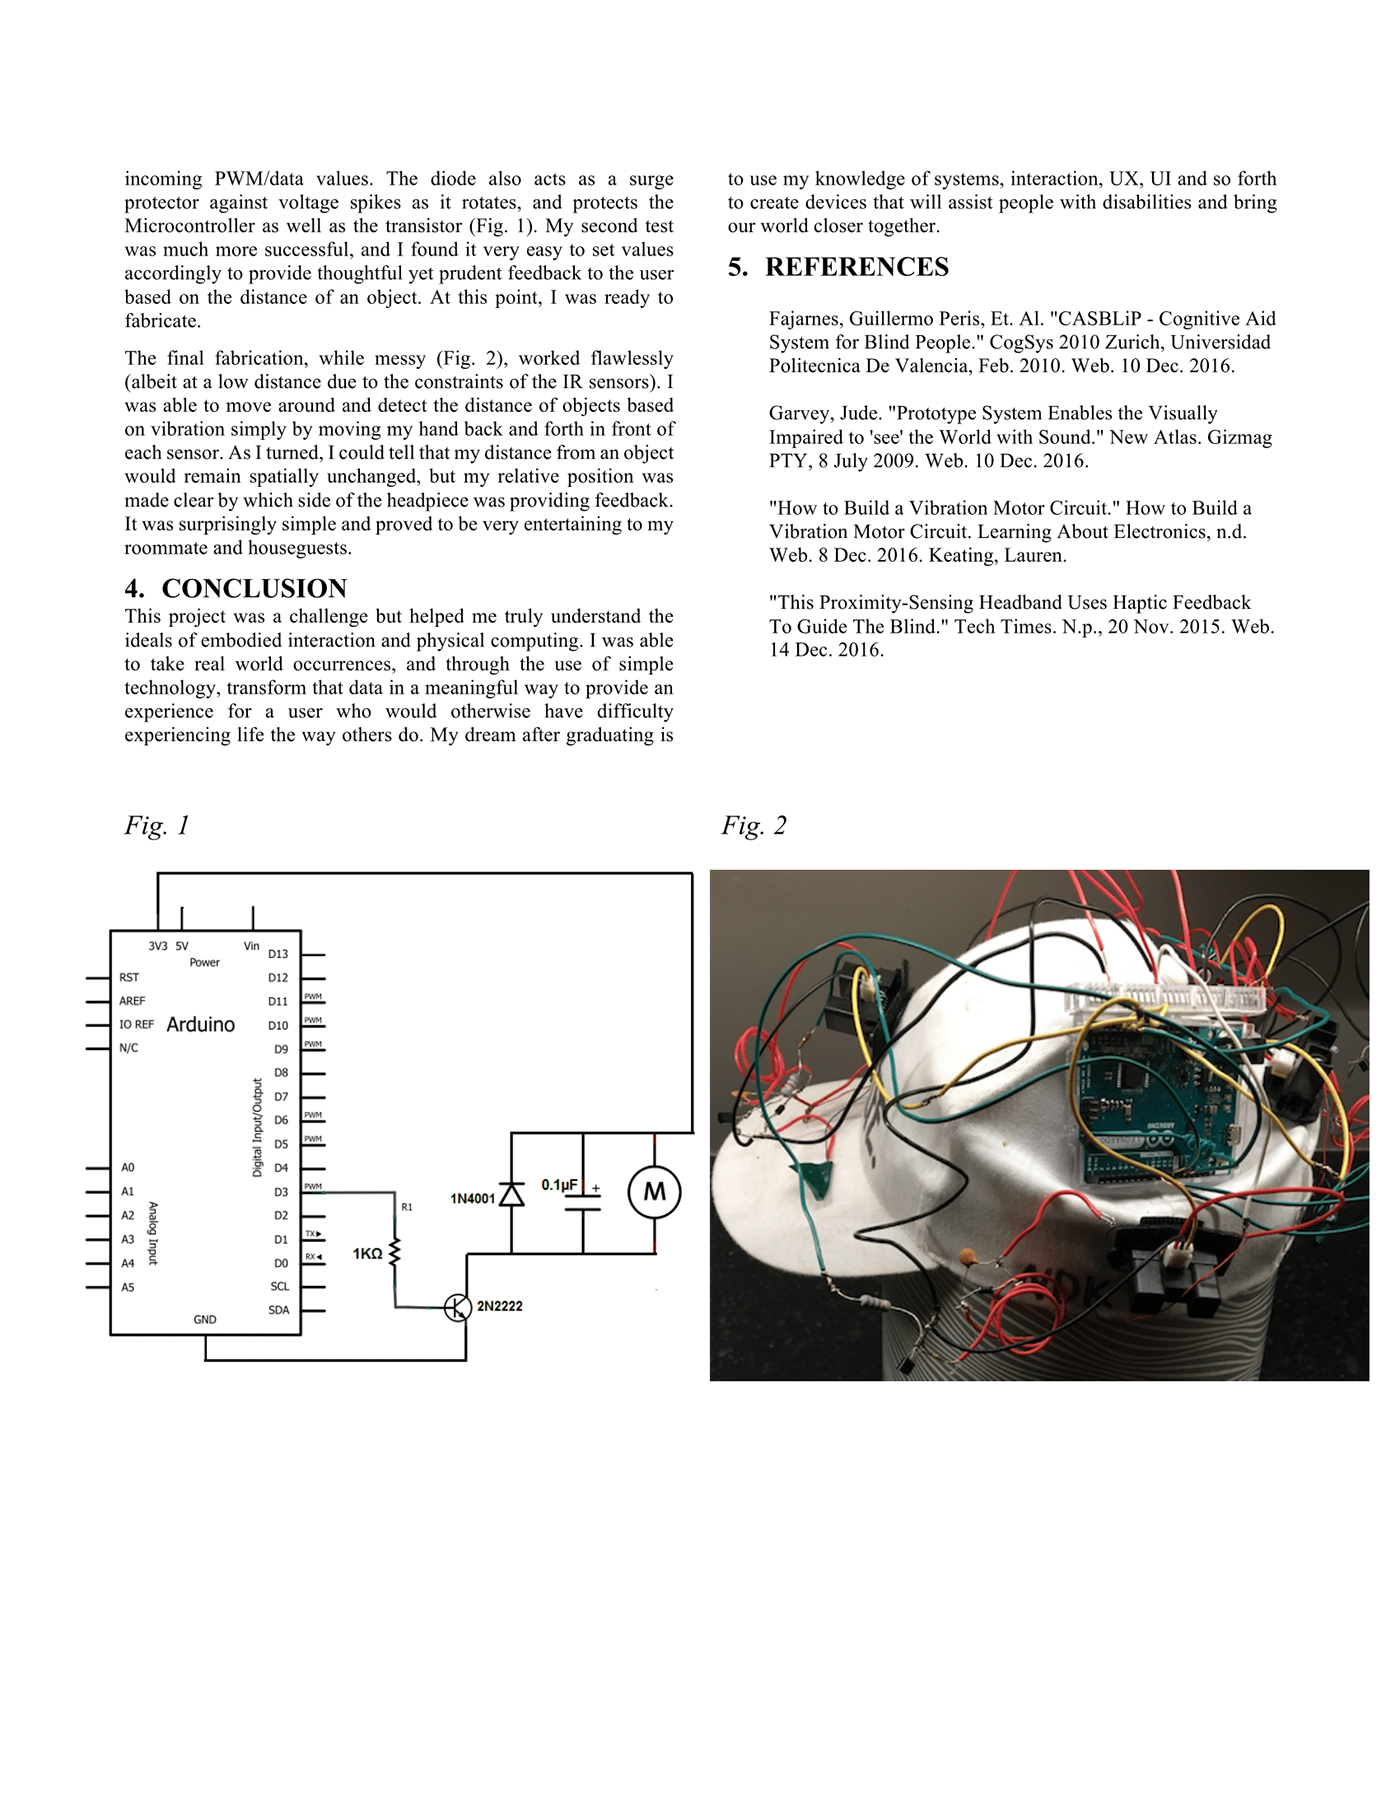 Arduino Proximity Headpiece On Behance How To Build A Vibration Motor Circuit Use For Projects As Explained In The Dossier I Had Create Series Of Nested Statements Order Smooth Buffers Between Levels Heres Main Code